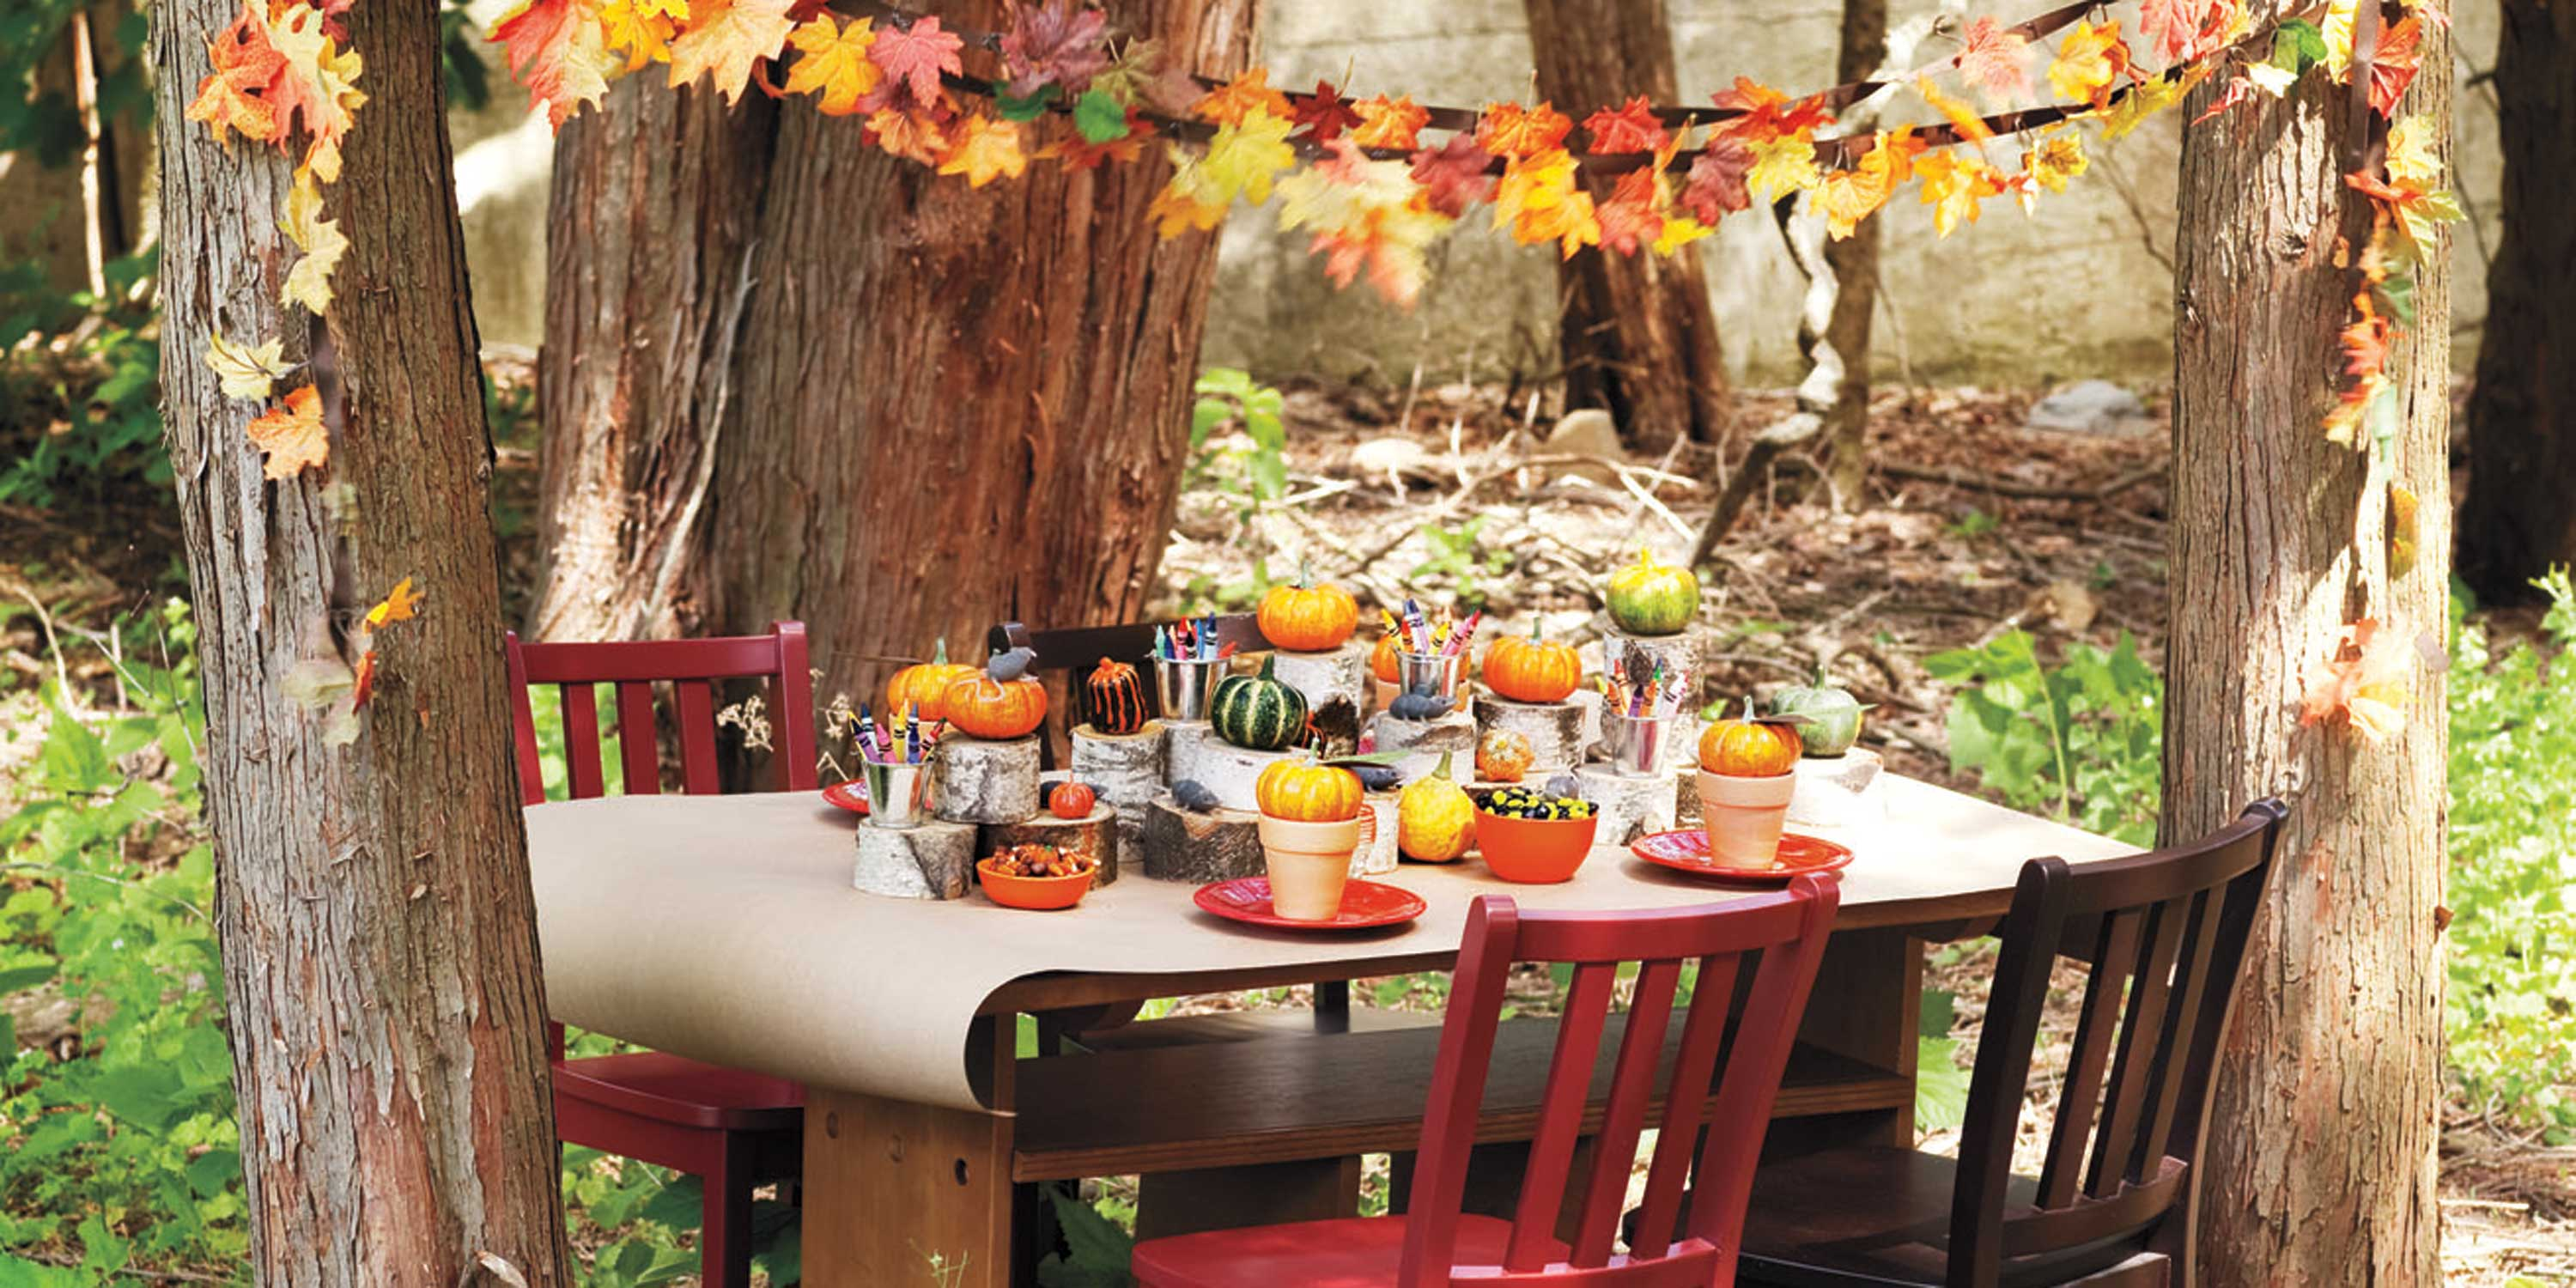 13 fall harvest party ideas for kids autumn party food Fall decorating ideas for dinner party